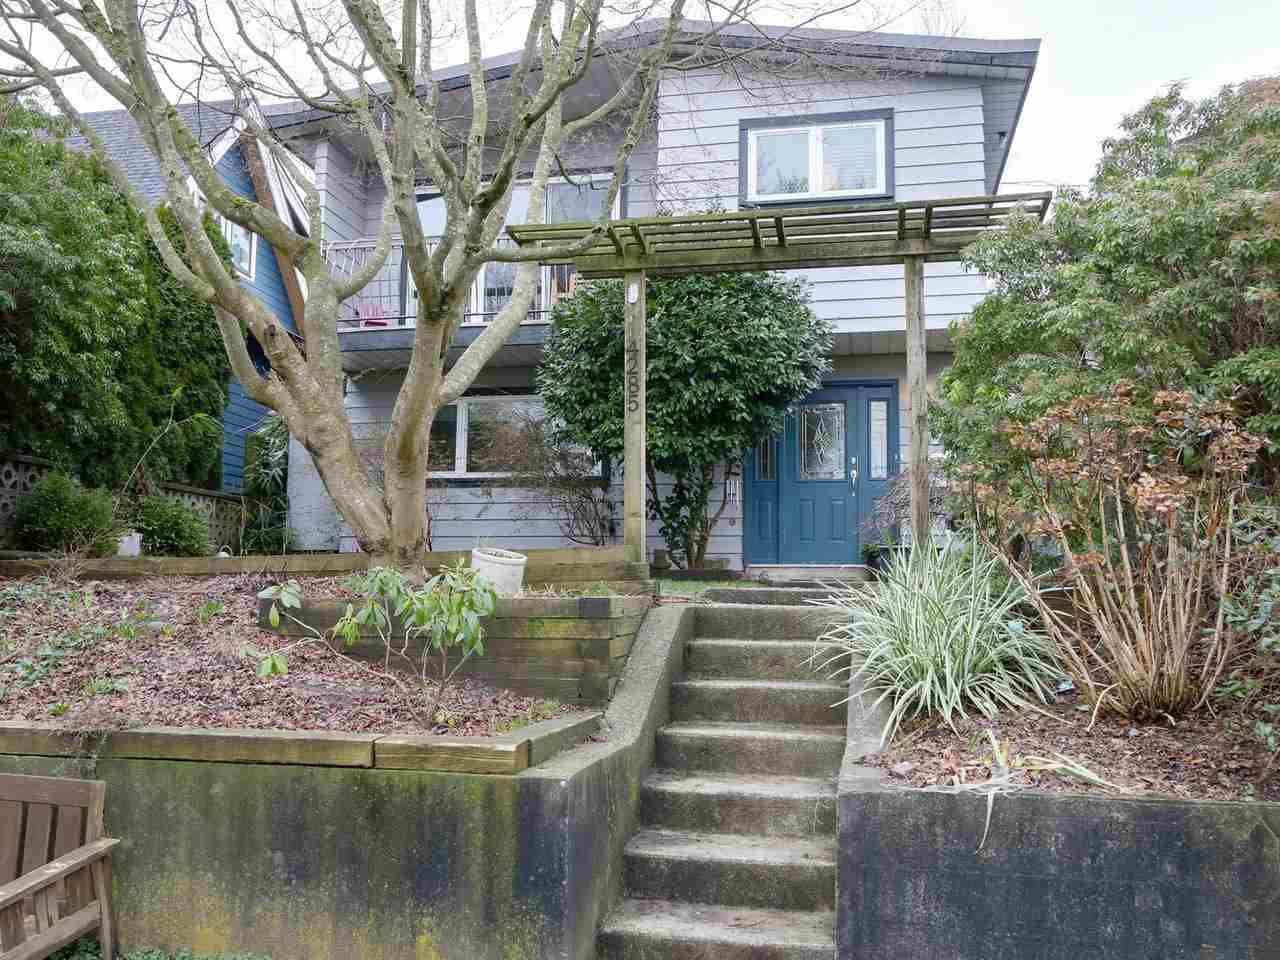 Main Photo: 4285 ST. GEORGE STREET in Vancouver: Fraser VE House for sale (Vancouver East)  : MLS®# R2433142